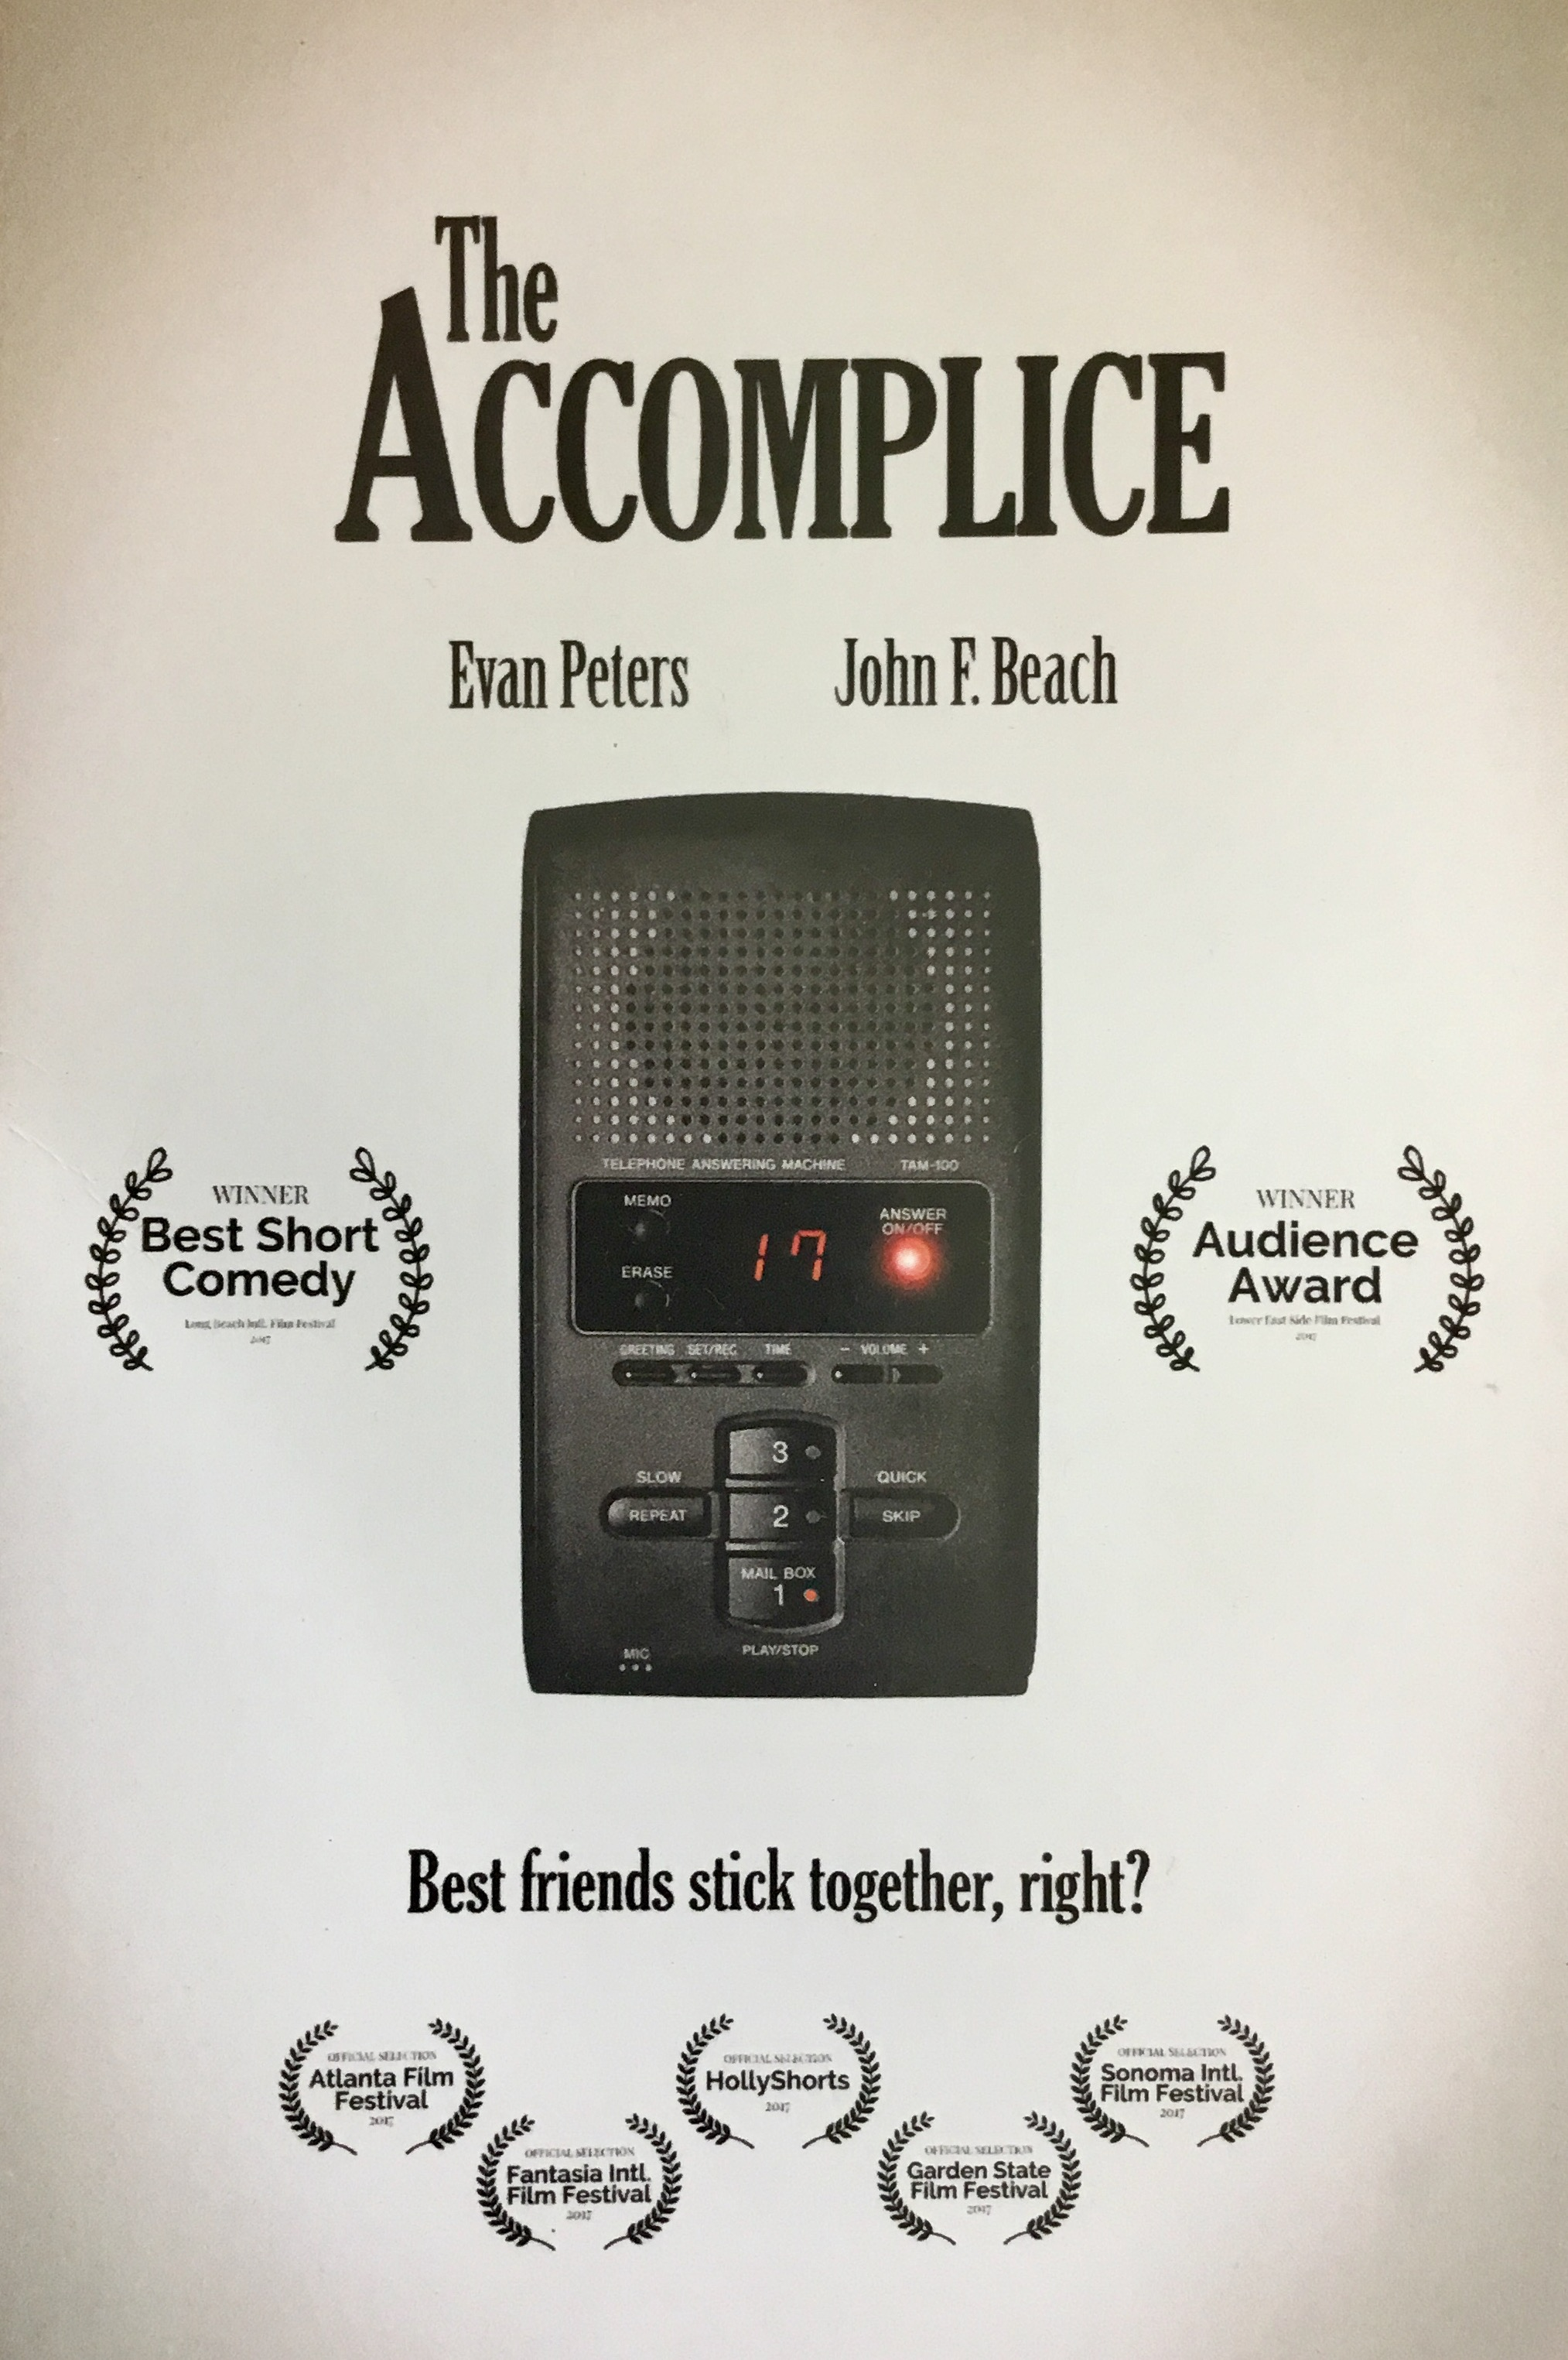 """The Accomplice"" - Arriving home from a long business trip, Jerry discovers a number of urgent messages on his answering machine. - (dir.) John Hoegg. Sound Design, Audio Post-Production, Location Sound, & Score by Jack Goodman."